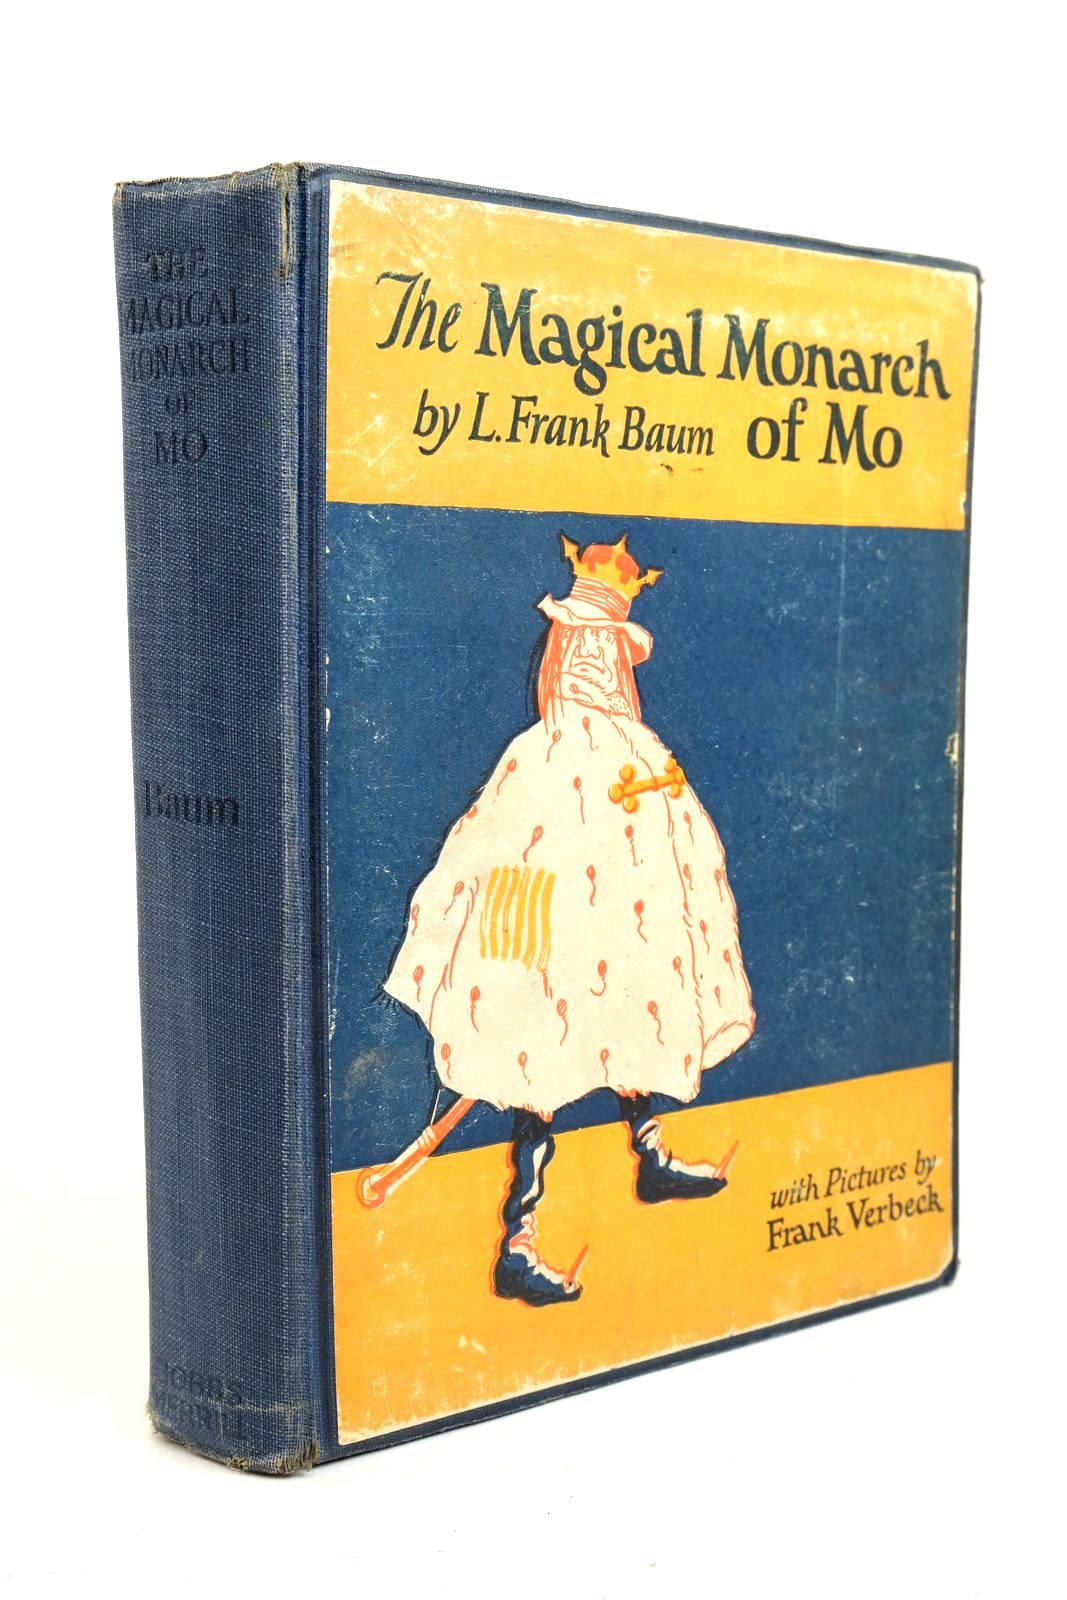 Photo of THE SURPRISING ADVENTURES OF THE MAGICAL MONARCH OF MO AND HIS PEOPLE- Stock Number: 1321161